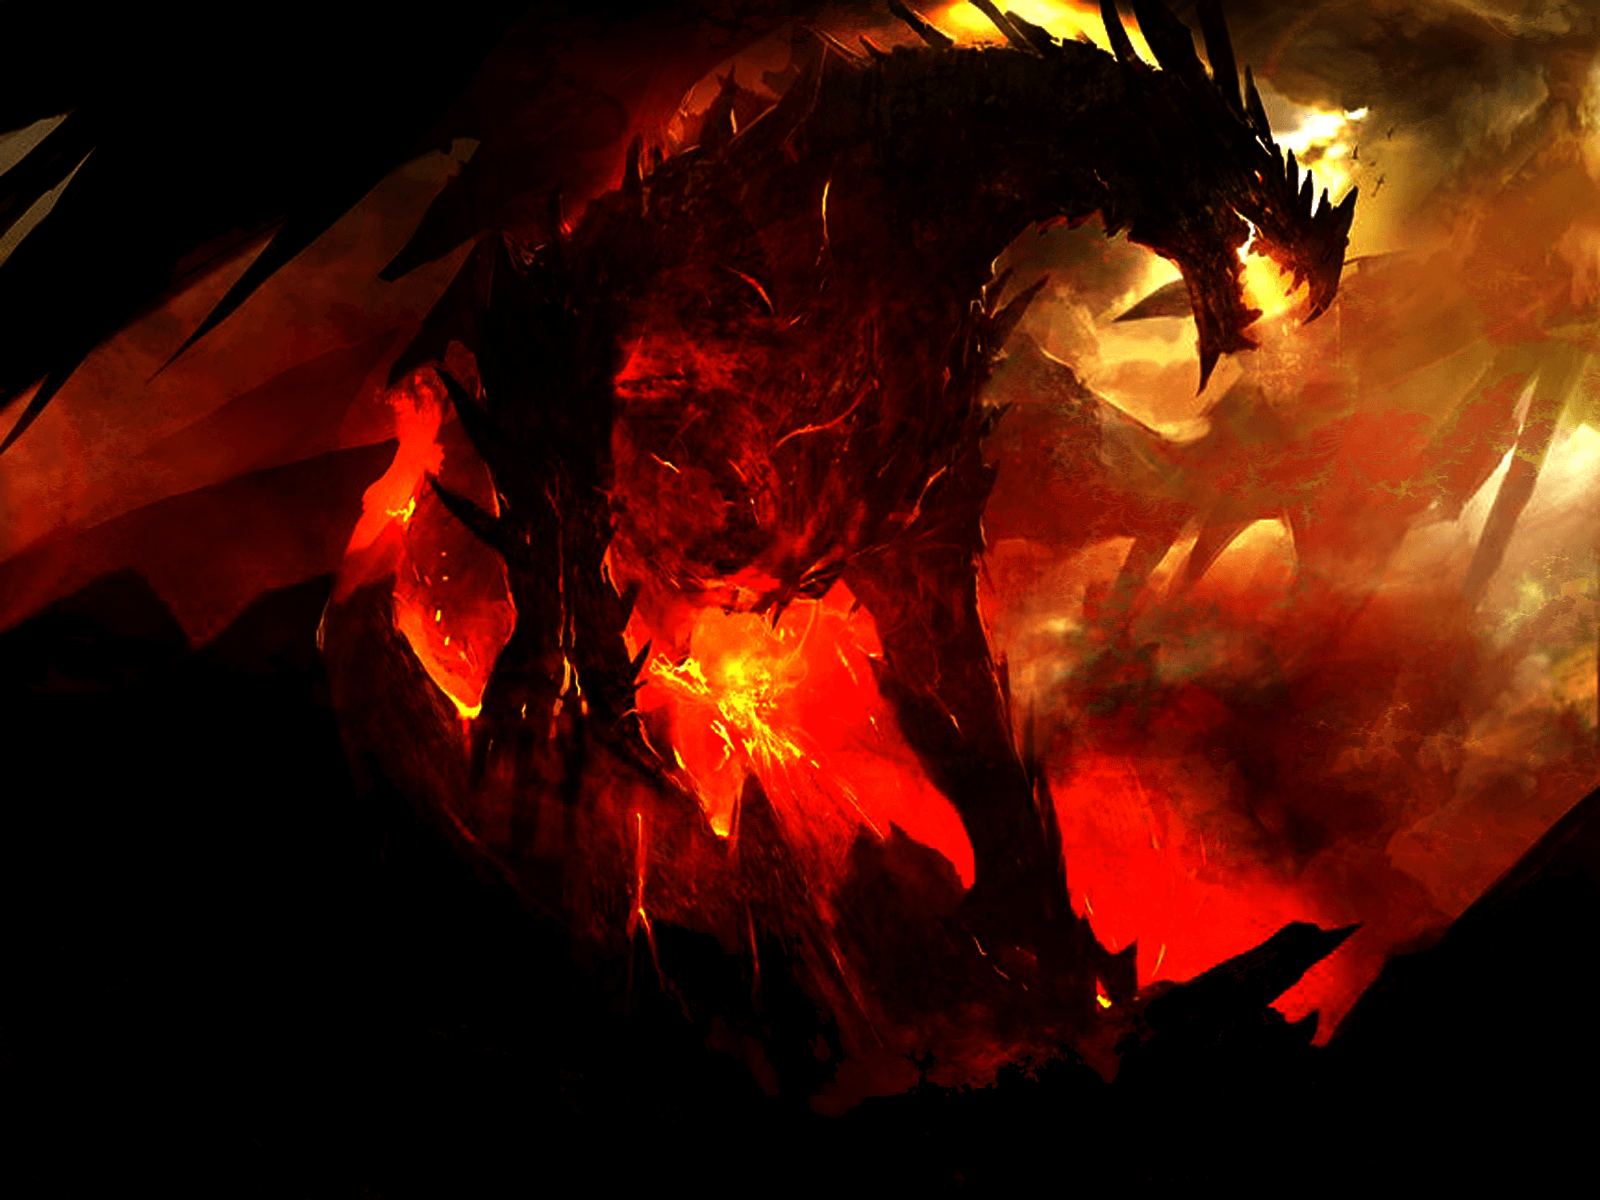 Red And Black Dragon Wallpaper Red And Black Dragon 851312